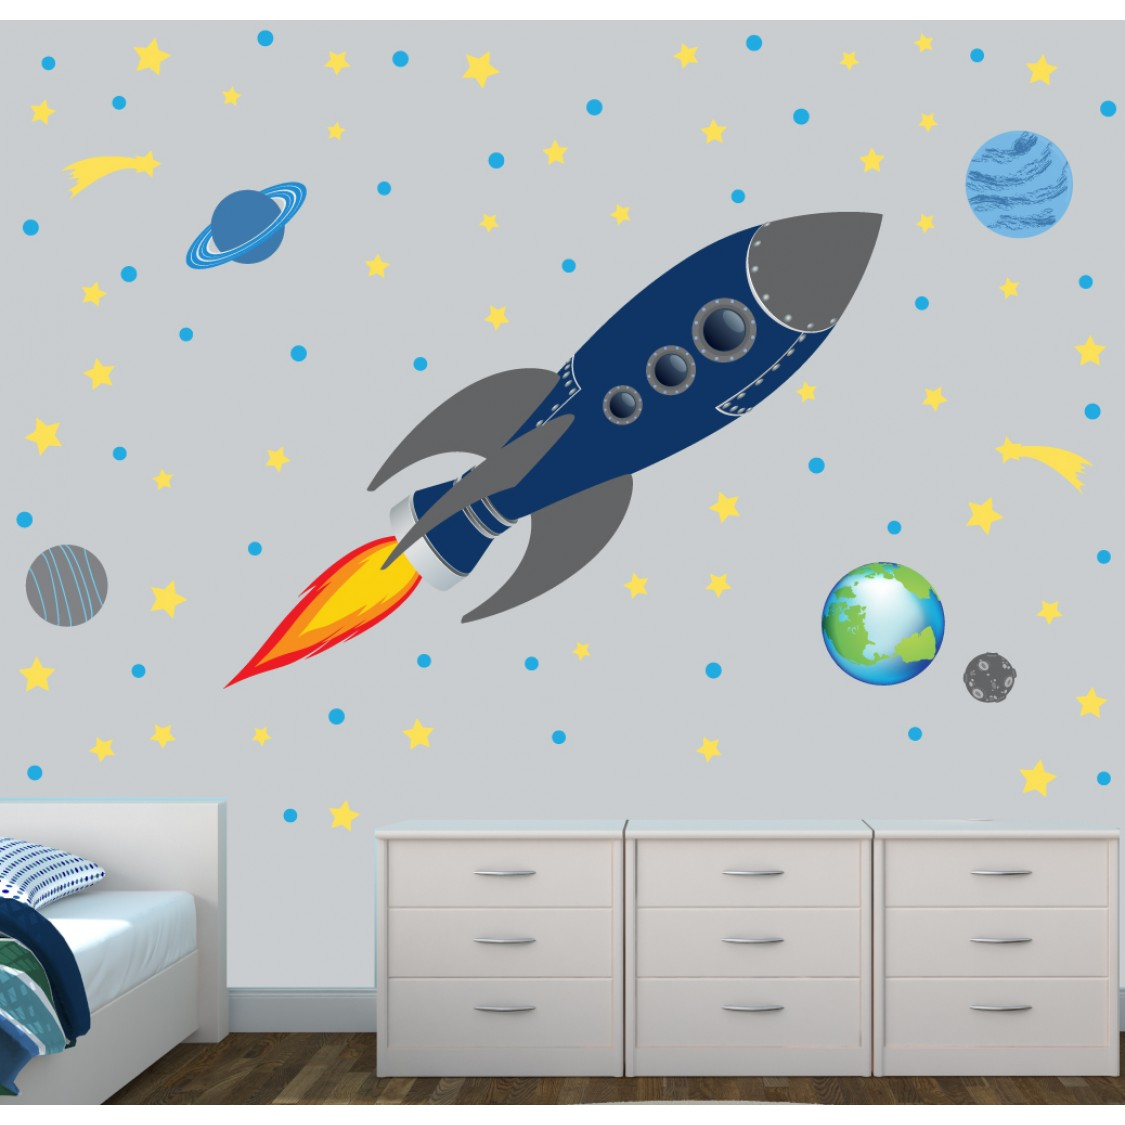 Rocket Wall Stickers Part 17